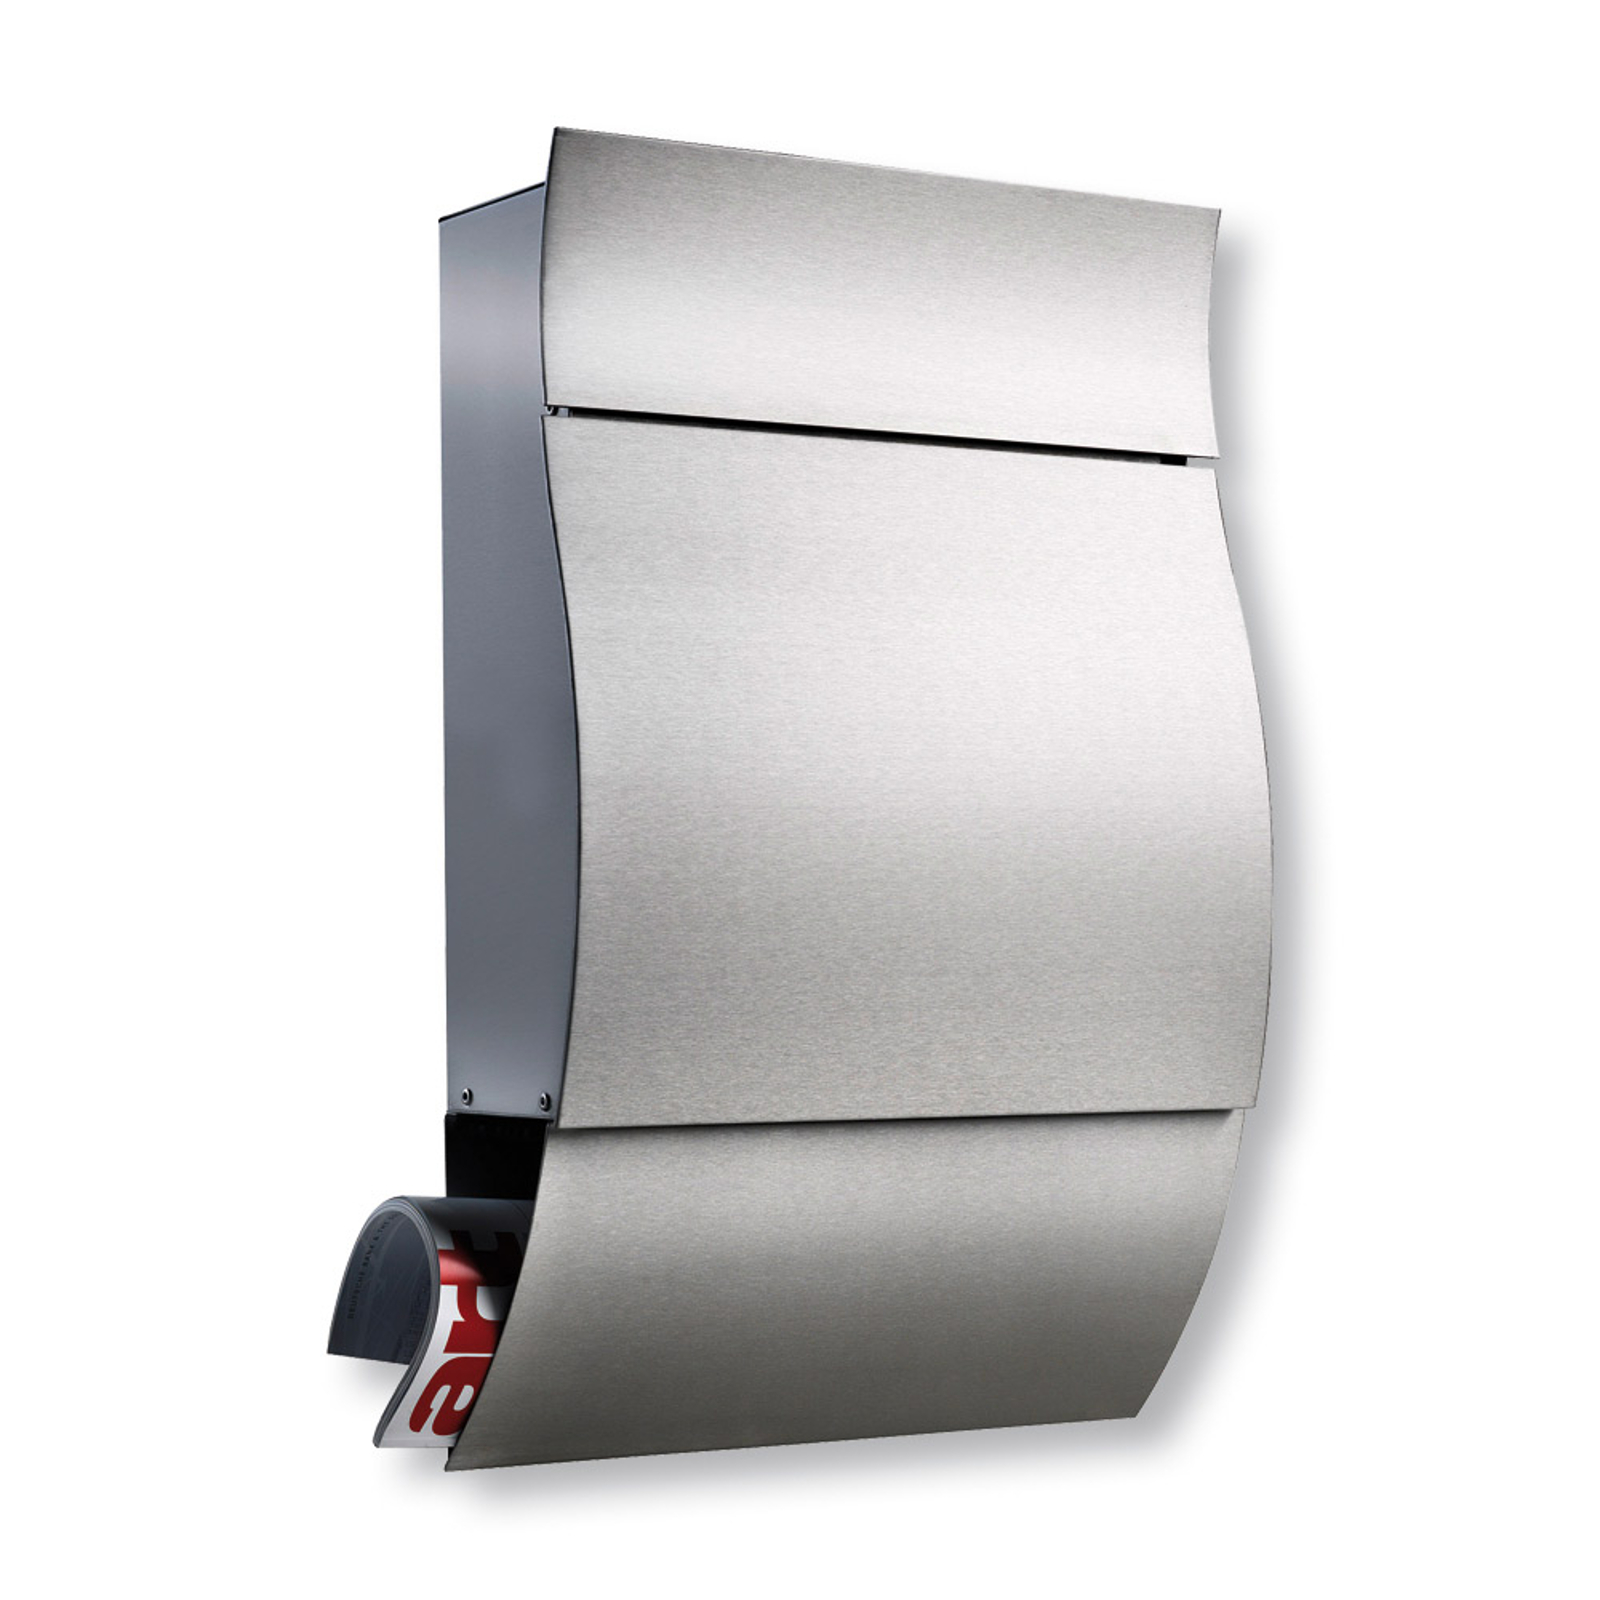 Opera - a comfortable stainless steel letter box_1532138_1